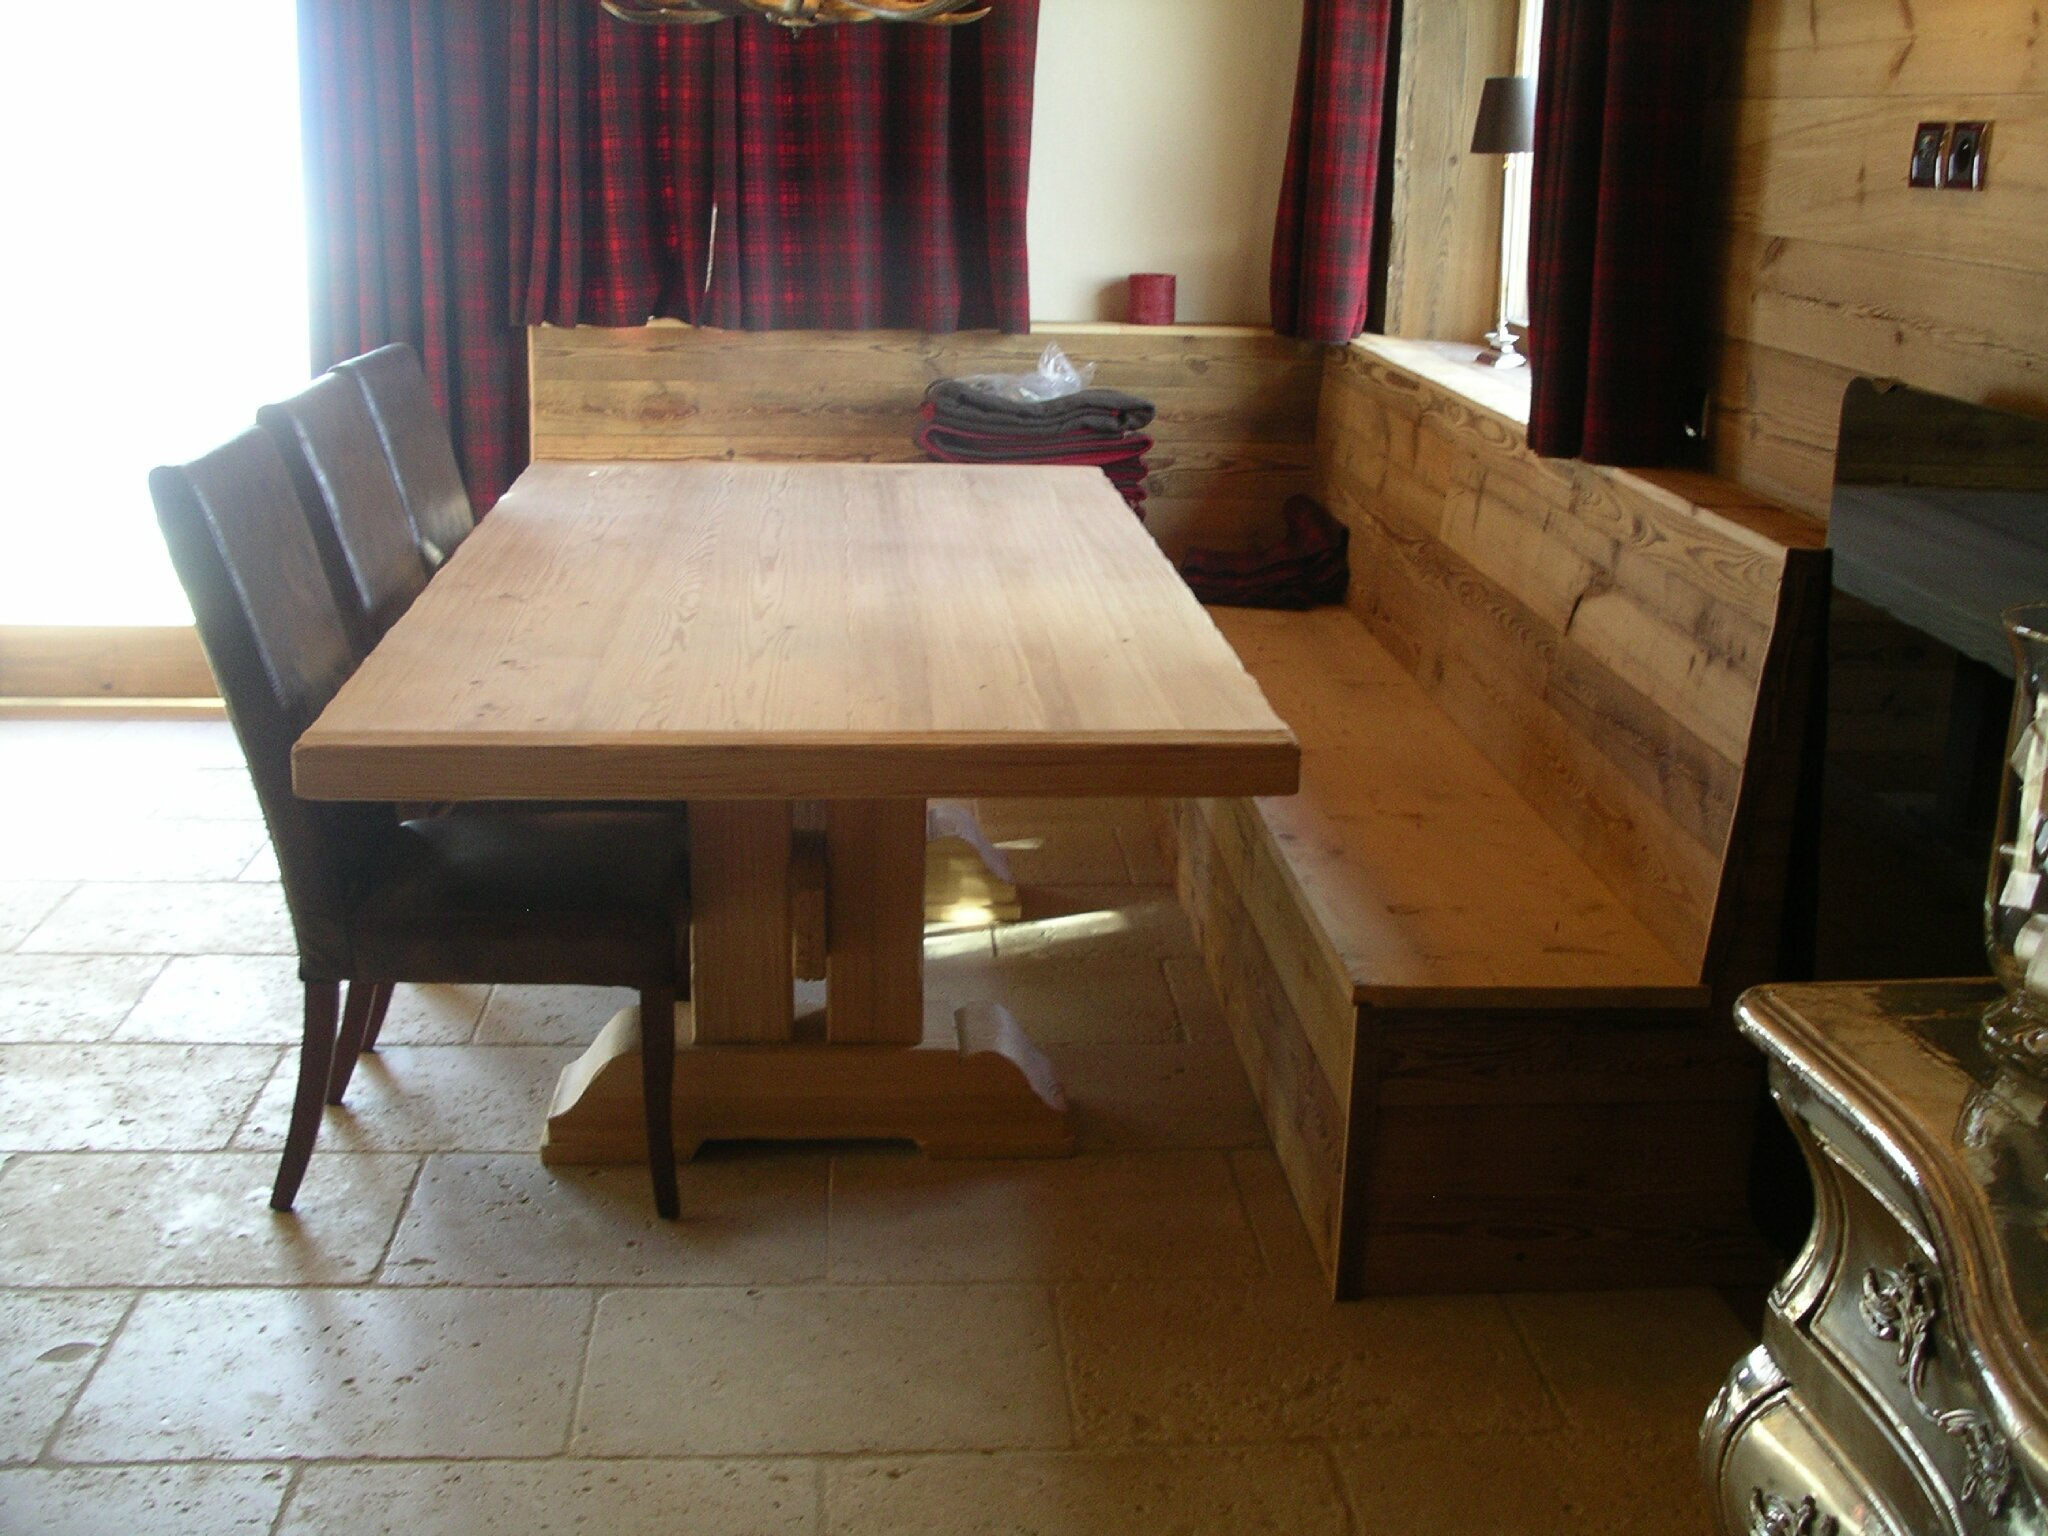 Table et banquette photo de agencement interieur d 39 un - Photo de table ...